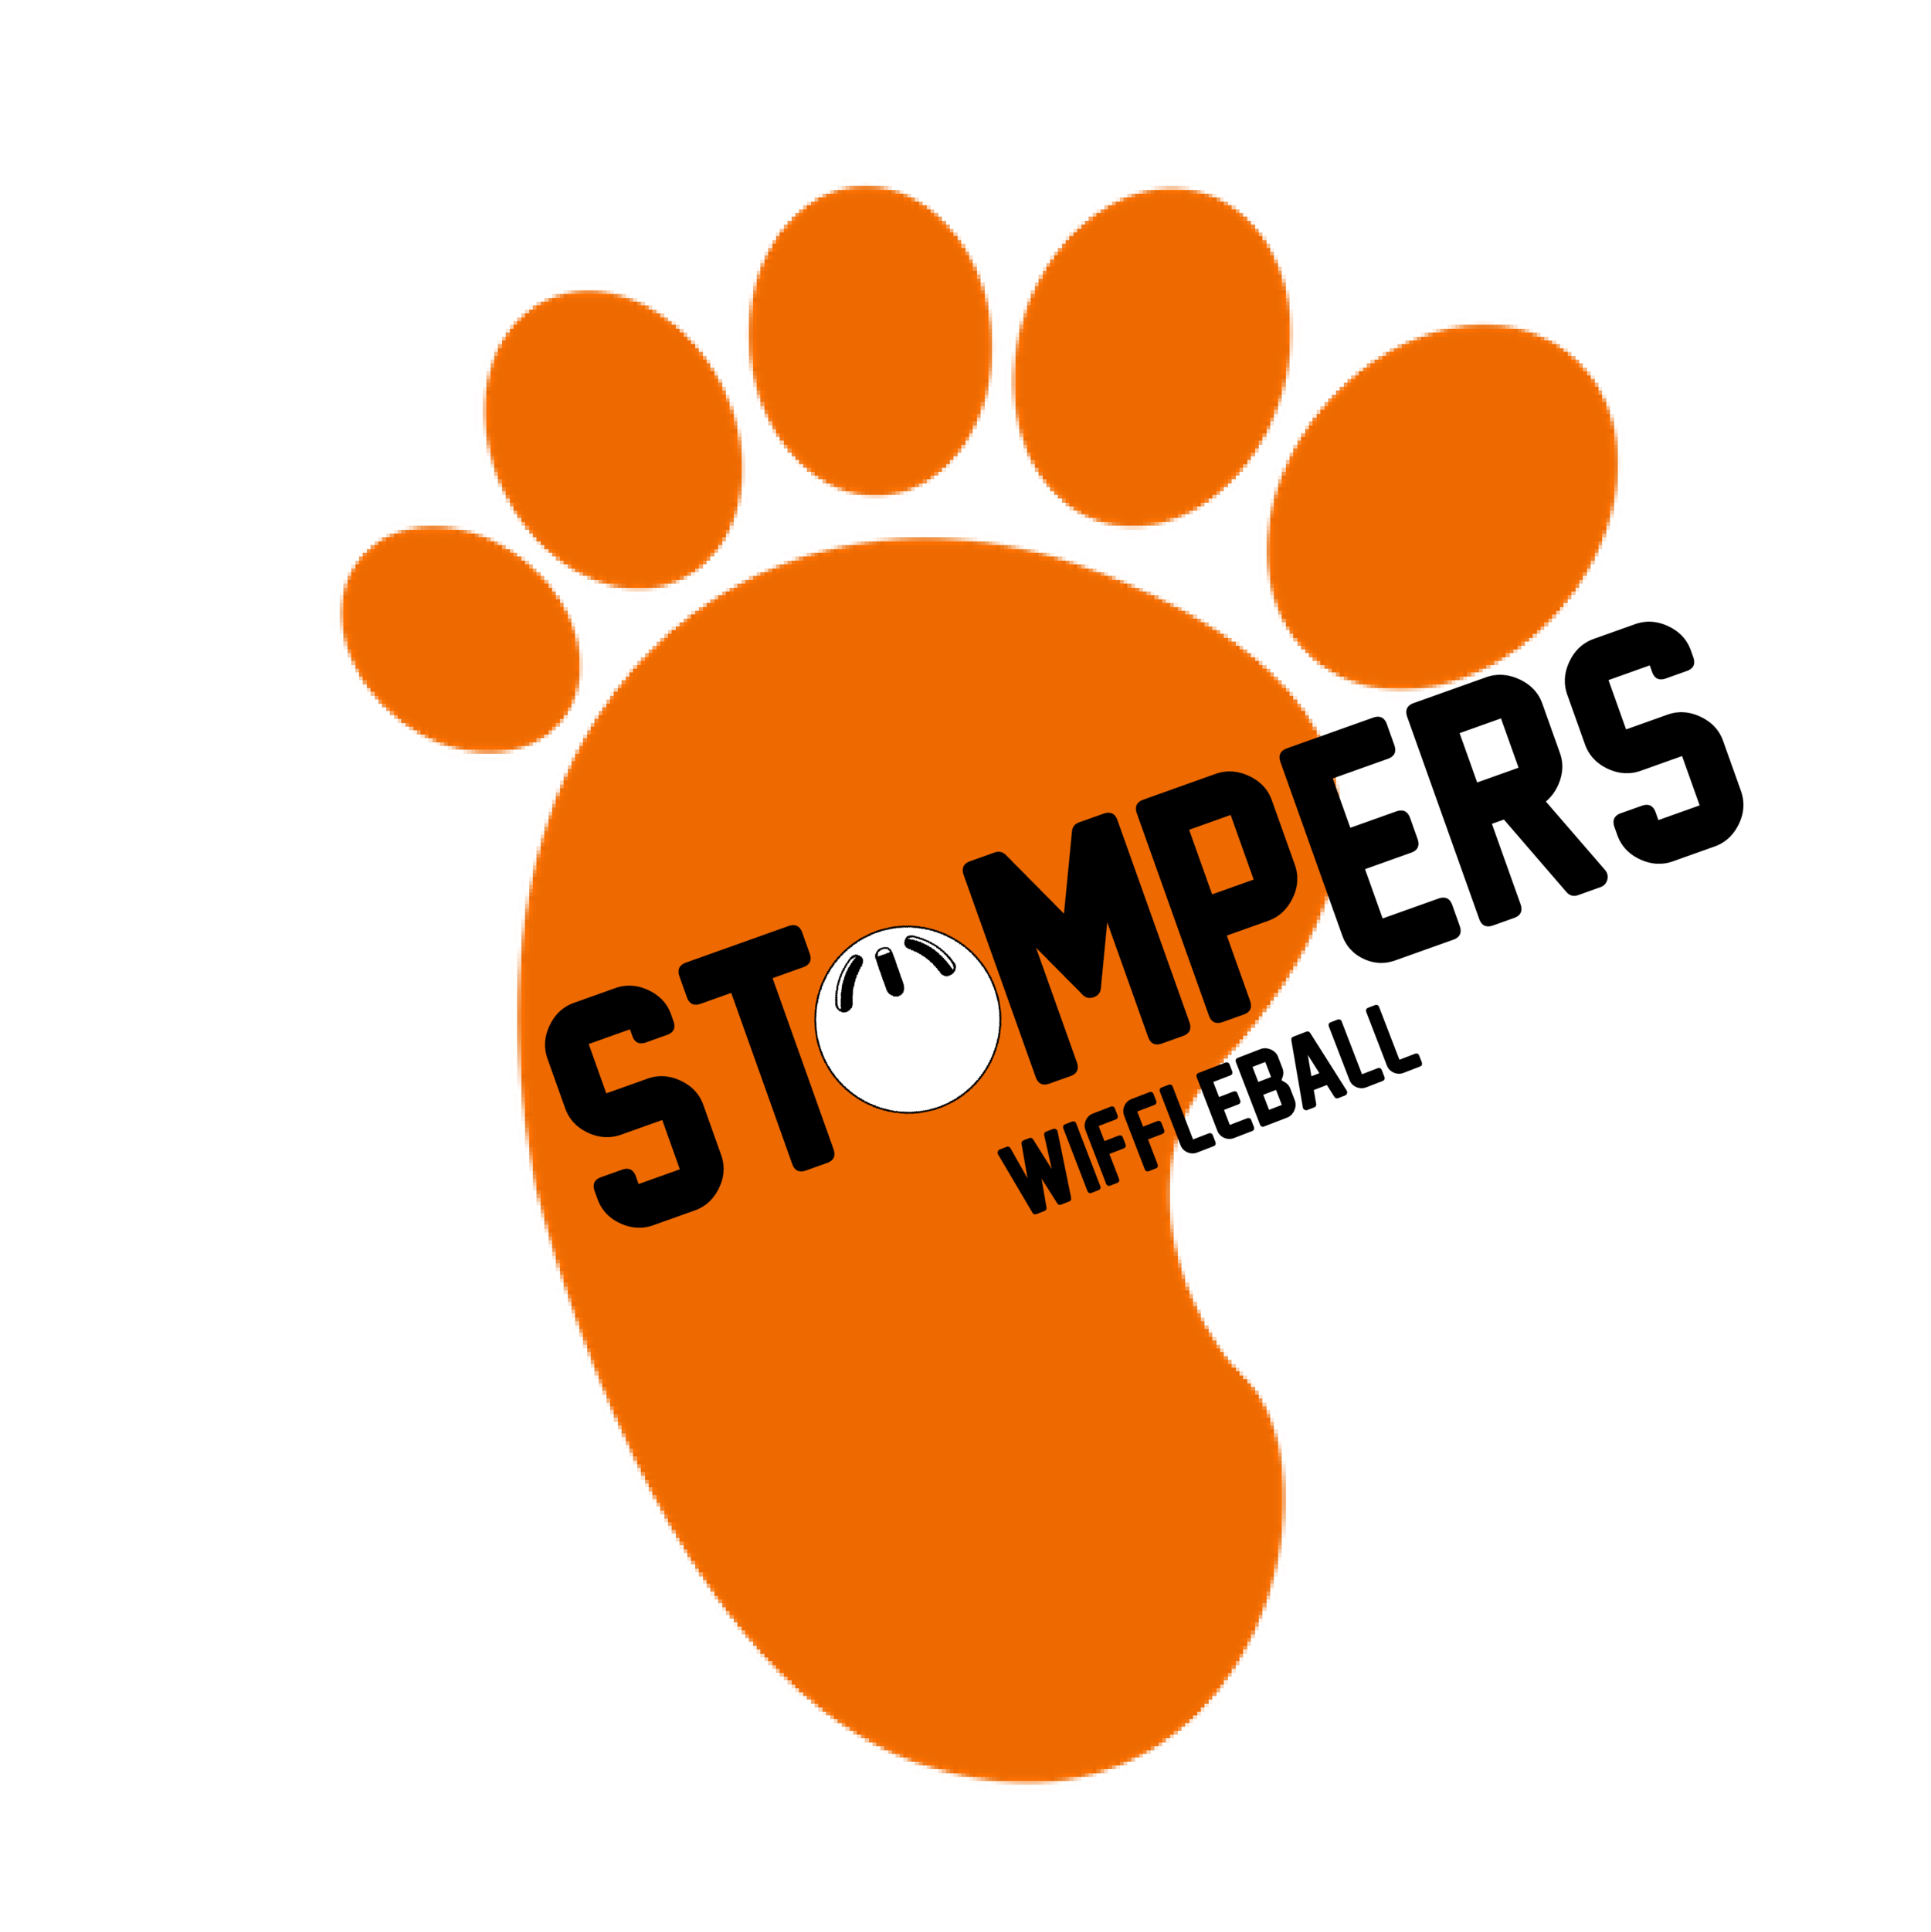 2018-01-28_working stompers logo (1).png